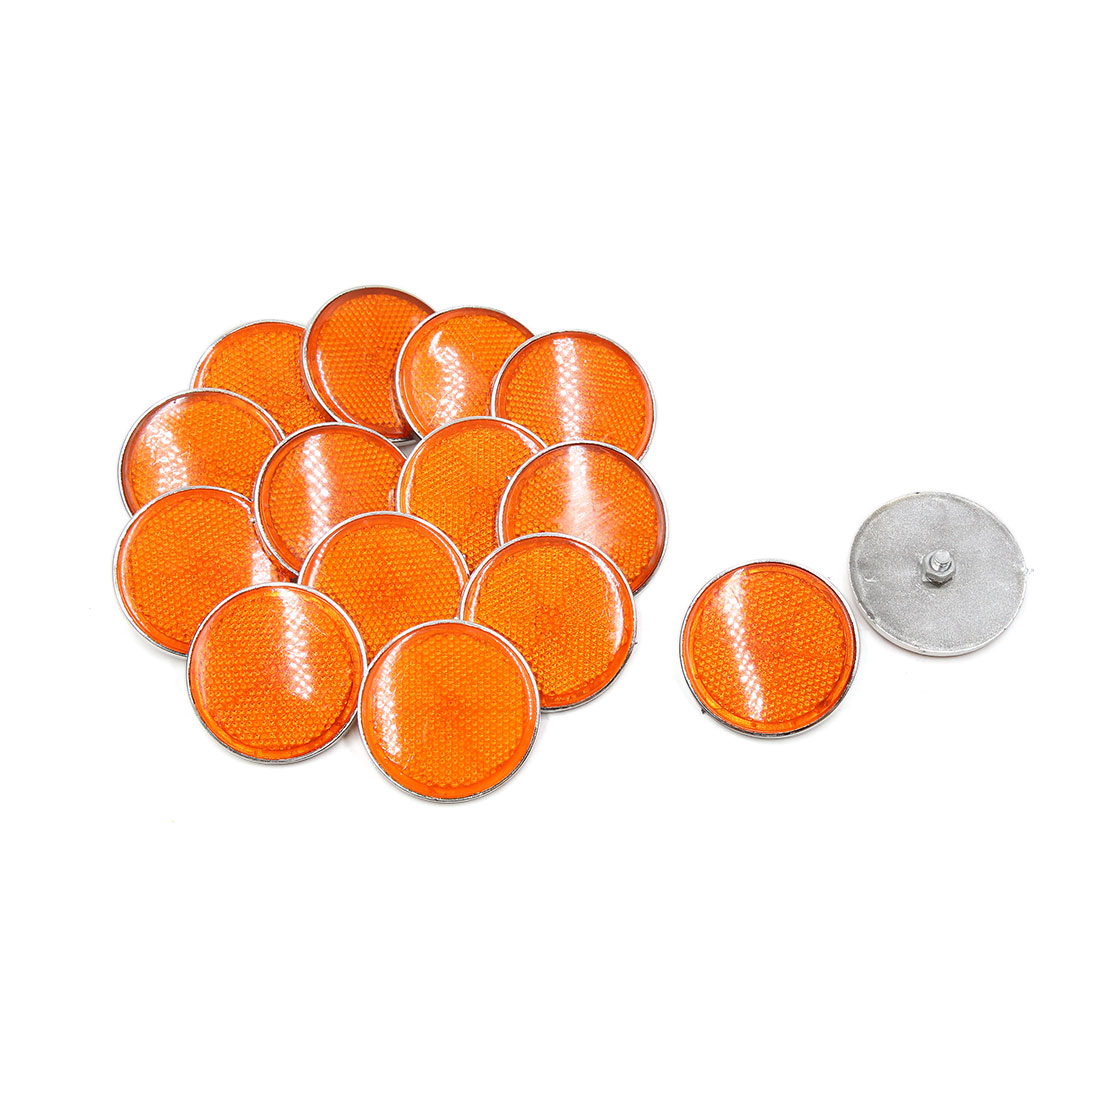 15 Pcs 55mm Dia Orange White Plastic Round Reflective Reflector for Motorbike - image 2 de 2